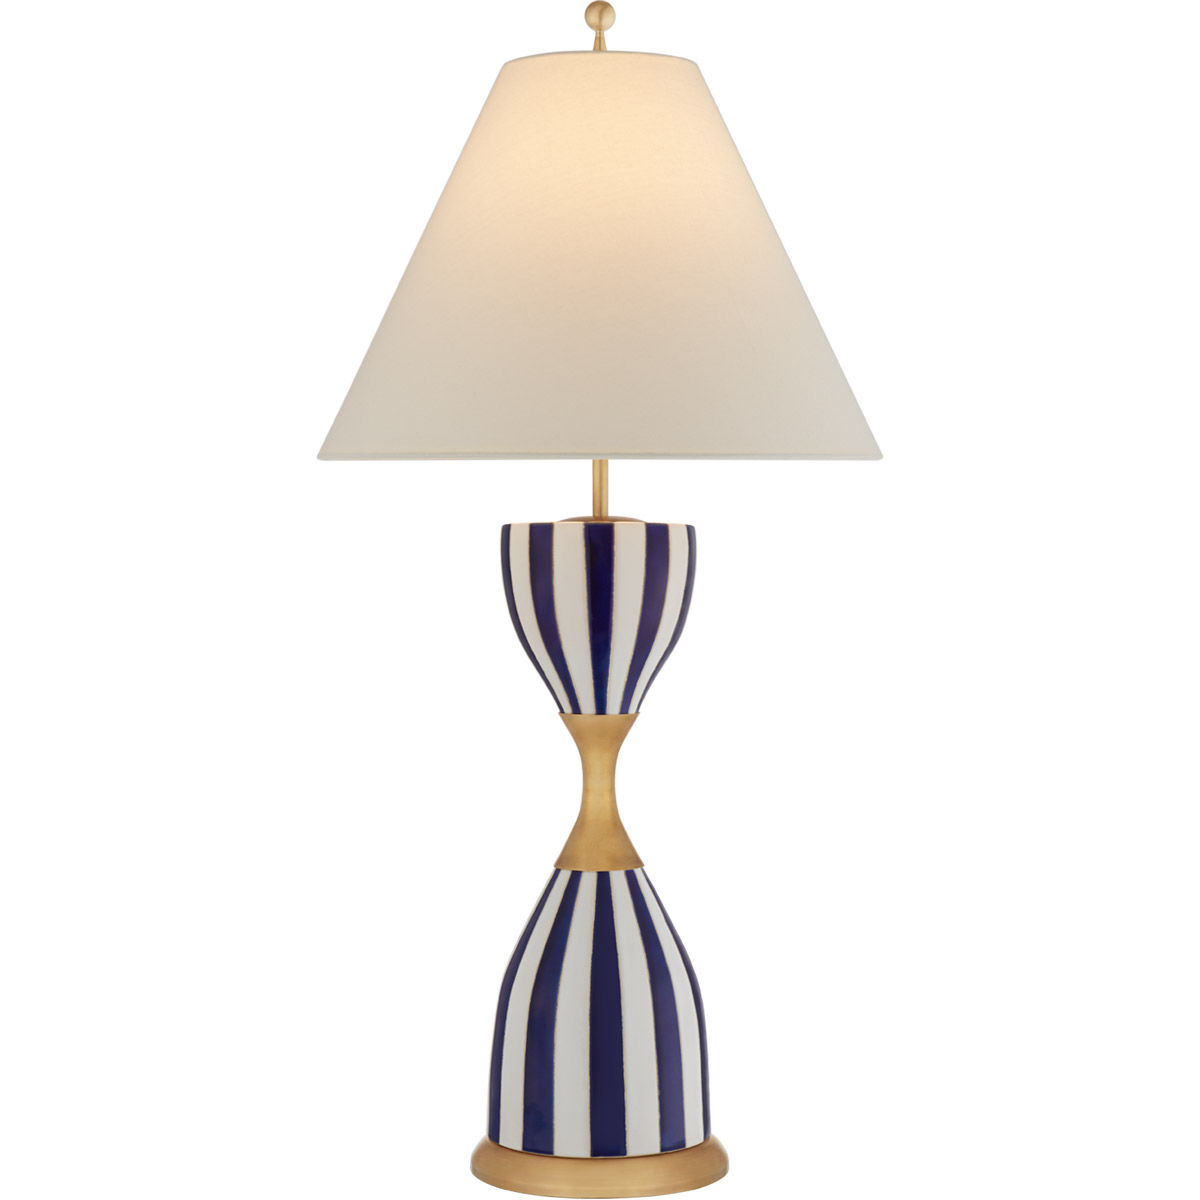 Tilly Large Table Lamp